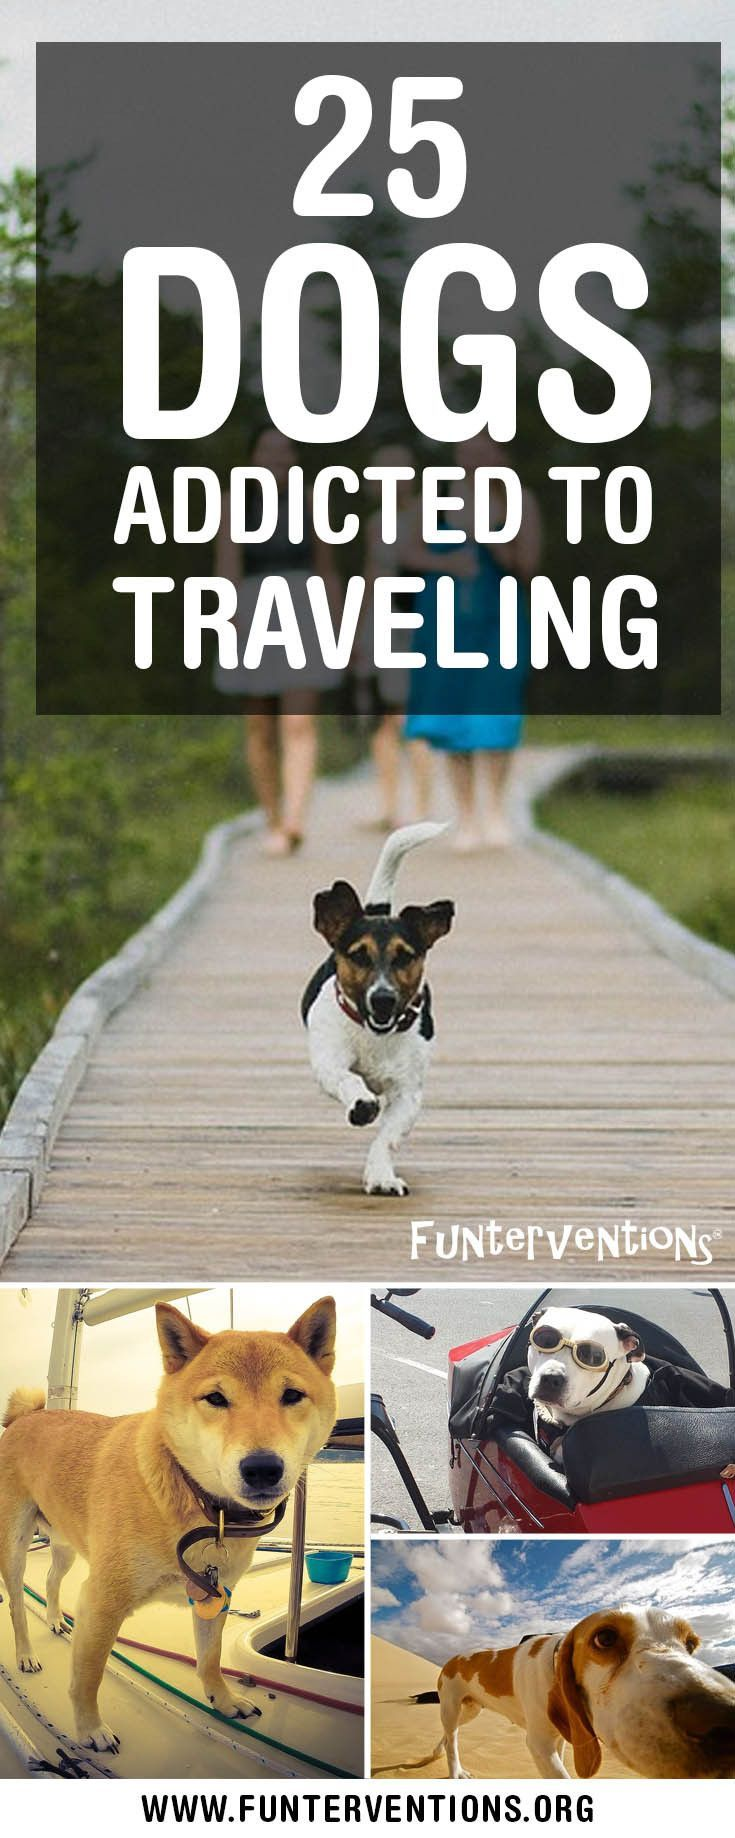 Sometimes being a Crazy Dog Owner and taking your dog with you everywhere you go can be a good thing, especially when it involves traveling the world together. And as it turns out, they love to travel too. Here are 25 dogs who are addicted to travel as mu